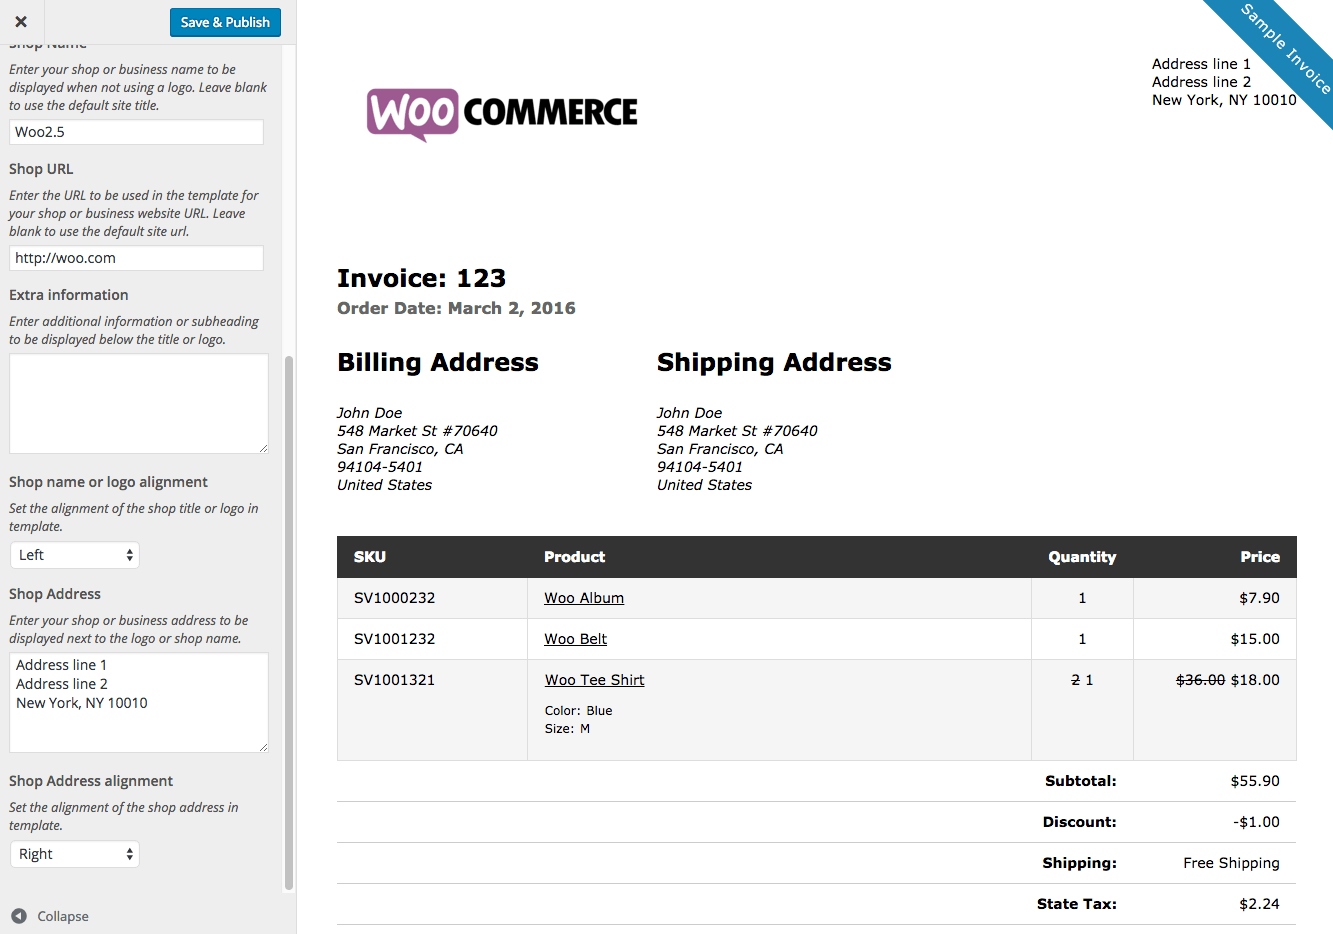 Aaaaeroincus  Surprising Woocommerce Print Invoices Amp Packing Lists  Woocommerce Docs With Gorgeous Woocommerce Print Invoices  Packing Lists Customizer With Awesome Invoice Central Also Definition Of Invoice In Addition Freelance Invoice Template And Canadian Customs Invoice As Well As Ups Commercial Invoice Additionally Basic Invoice Template From Docswoocommercecom With Aaaaeroincus  Gorgeous Woocommerce Print Invoices Amp Packing Lists  Woocommerce Docs With Awesome Woocommerce Print Invoices  Packing Lists Customizer And Surprising Invoice Central Also Definition Of Invoice In Addition Freelance Invoice Template From Docswoocommercecom